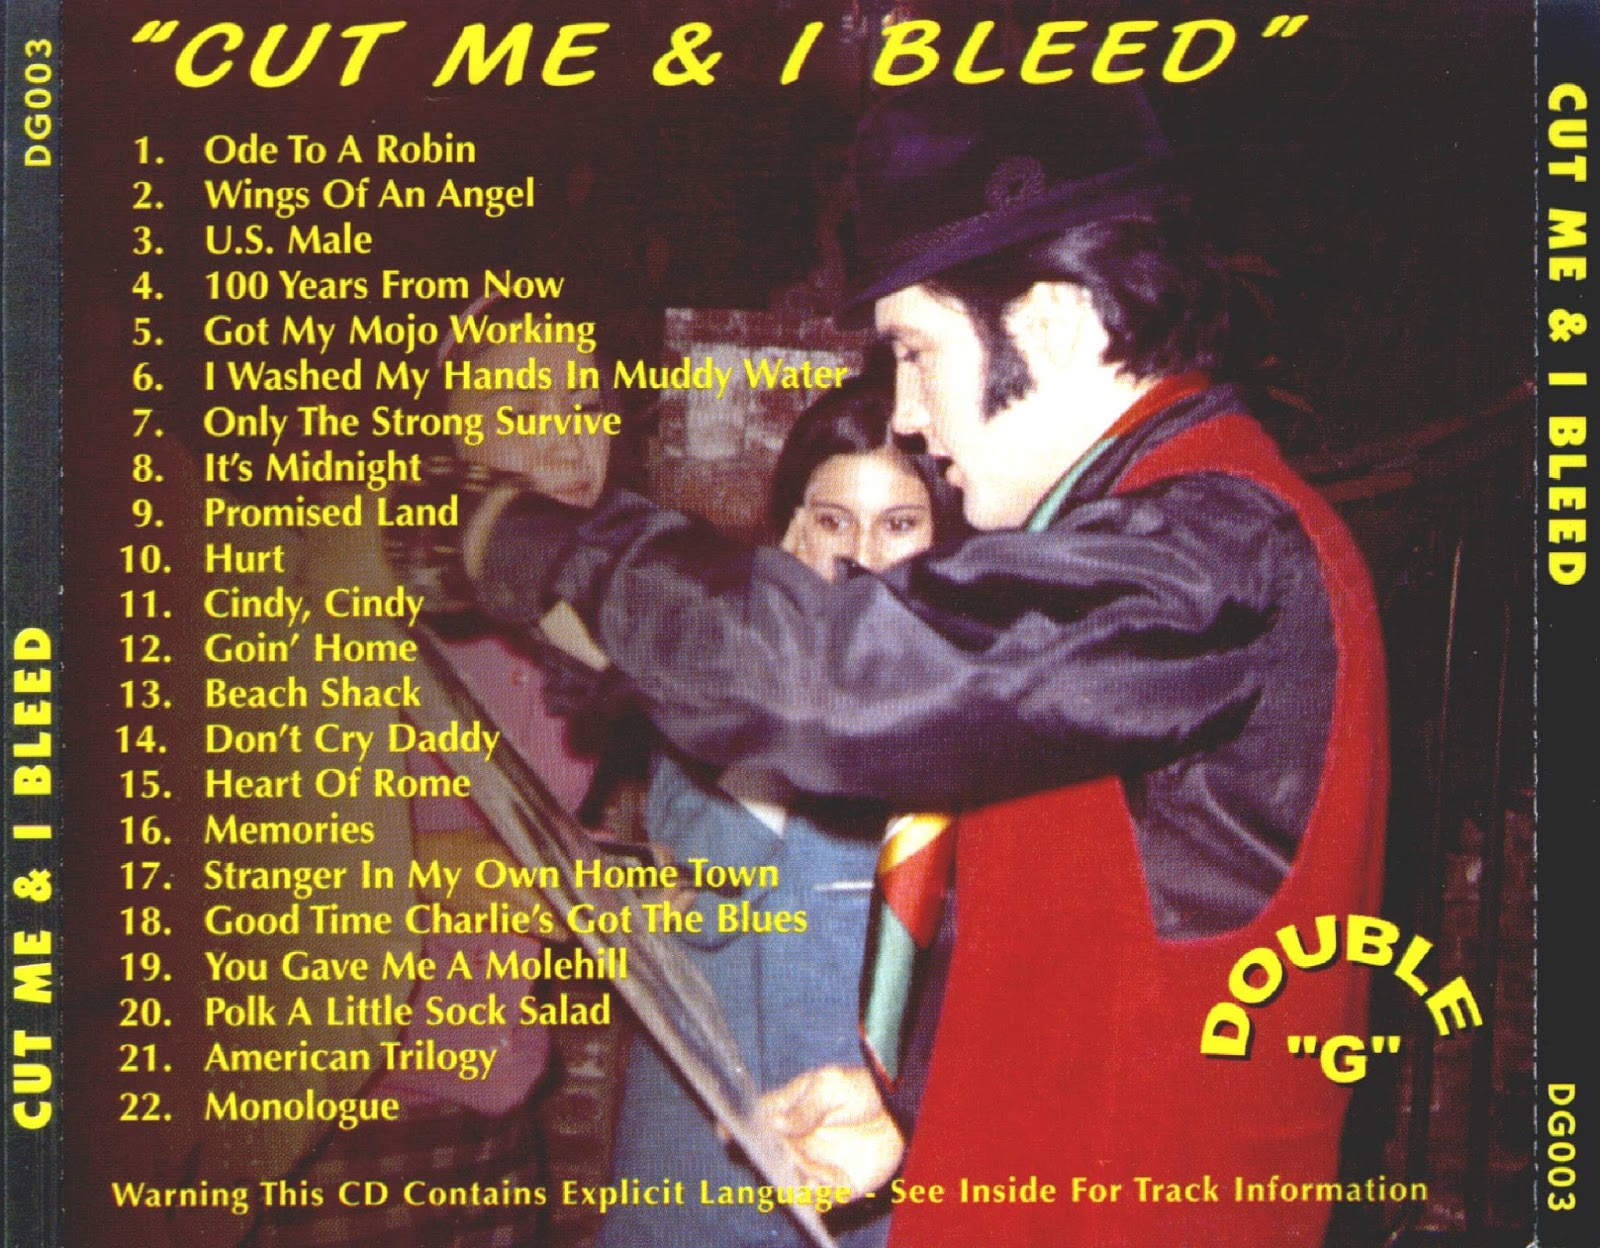 World Of BOOTLEGS: BOOTLEG : Elvis Presley - 'Cut Me & I Bleed', The